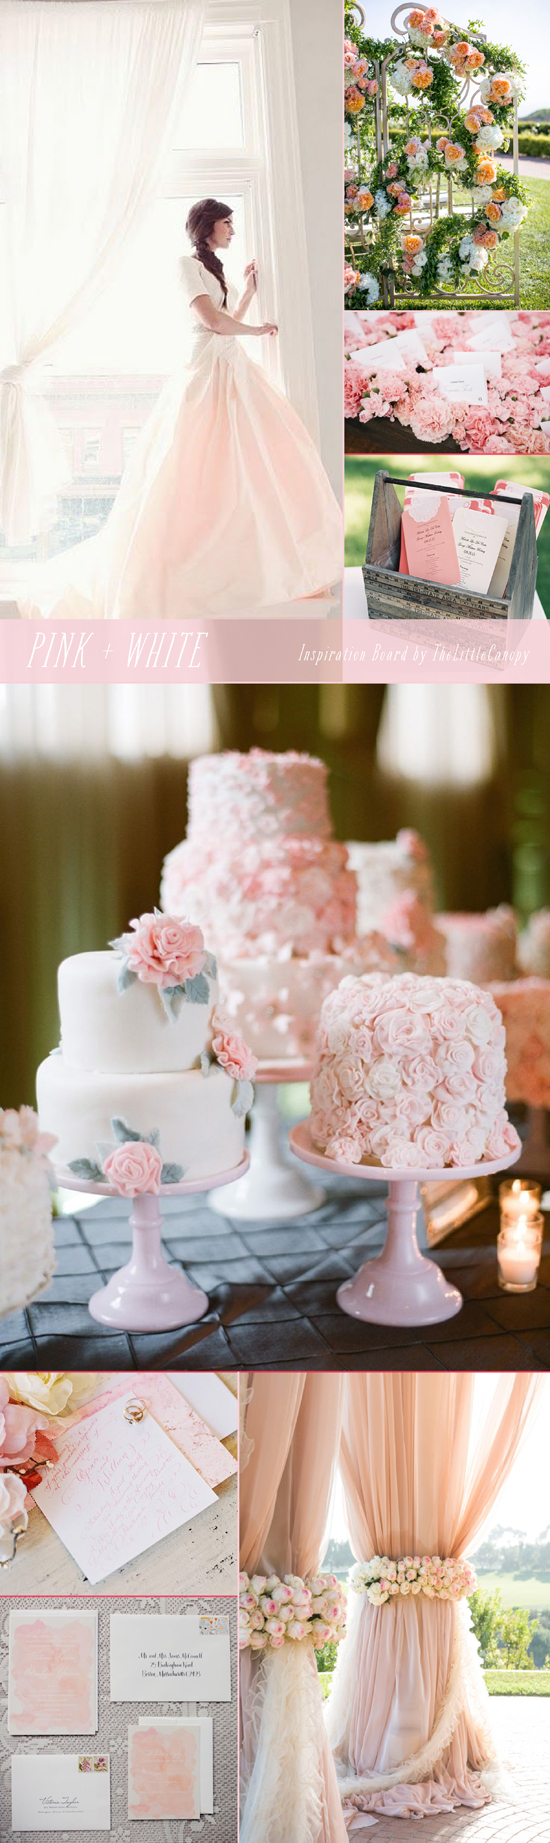 What girl doesn't like a little pink? Here's a pink + white inspiration board that is sure to make people swoon. Enjoy!